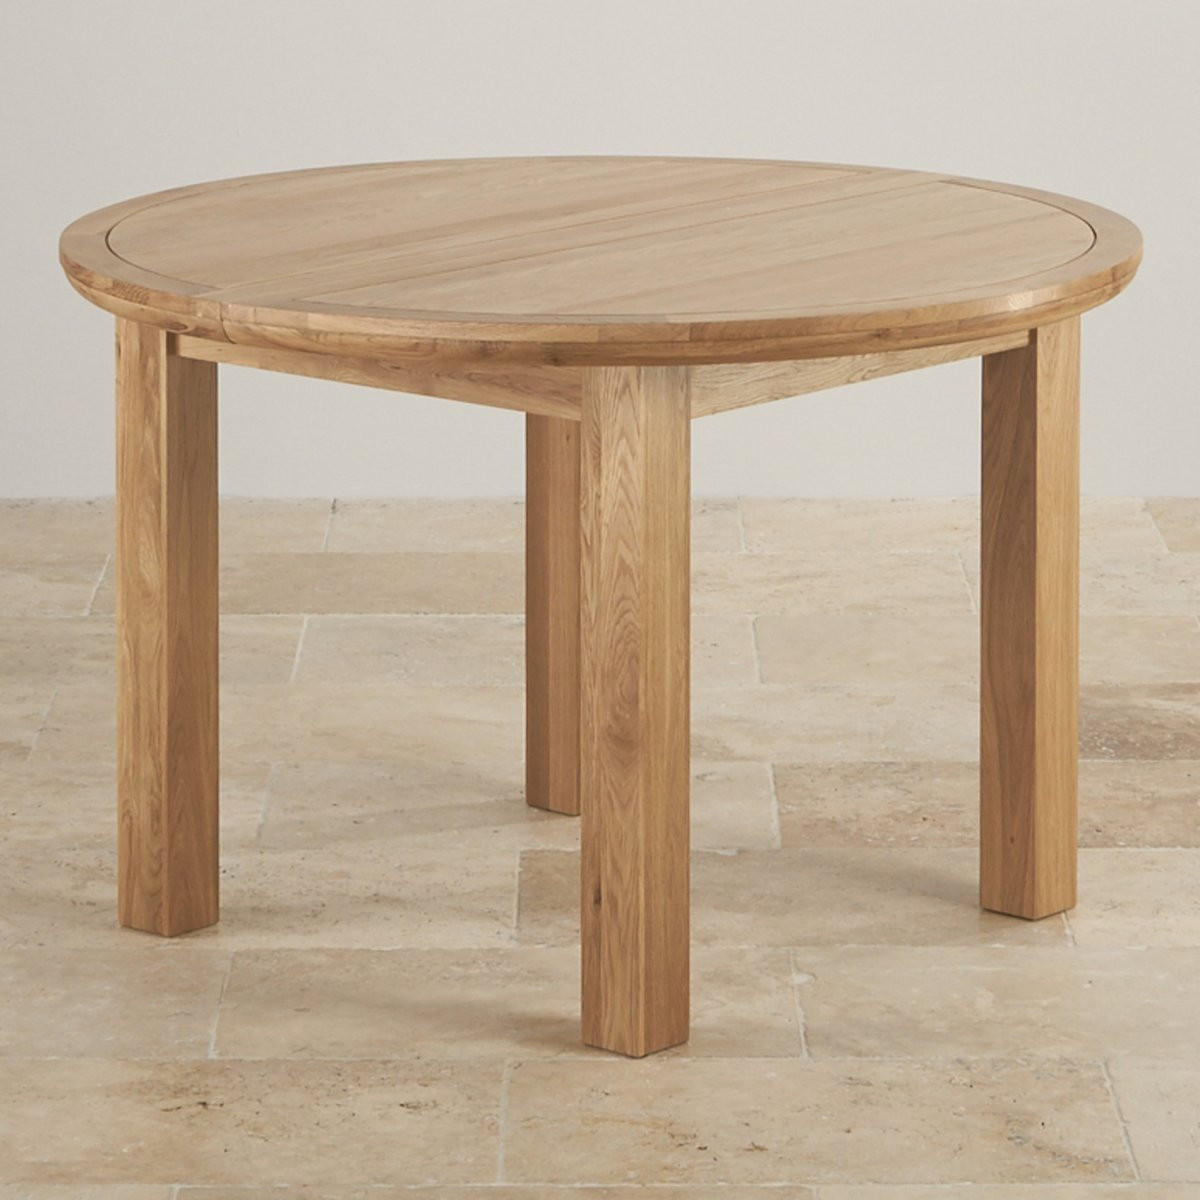 Best ideas about Round Extendable Dining Table . Save or Pin Knightsbridge 4ft Extending Round Dining Table in Natural Oak Now.